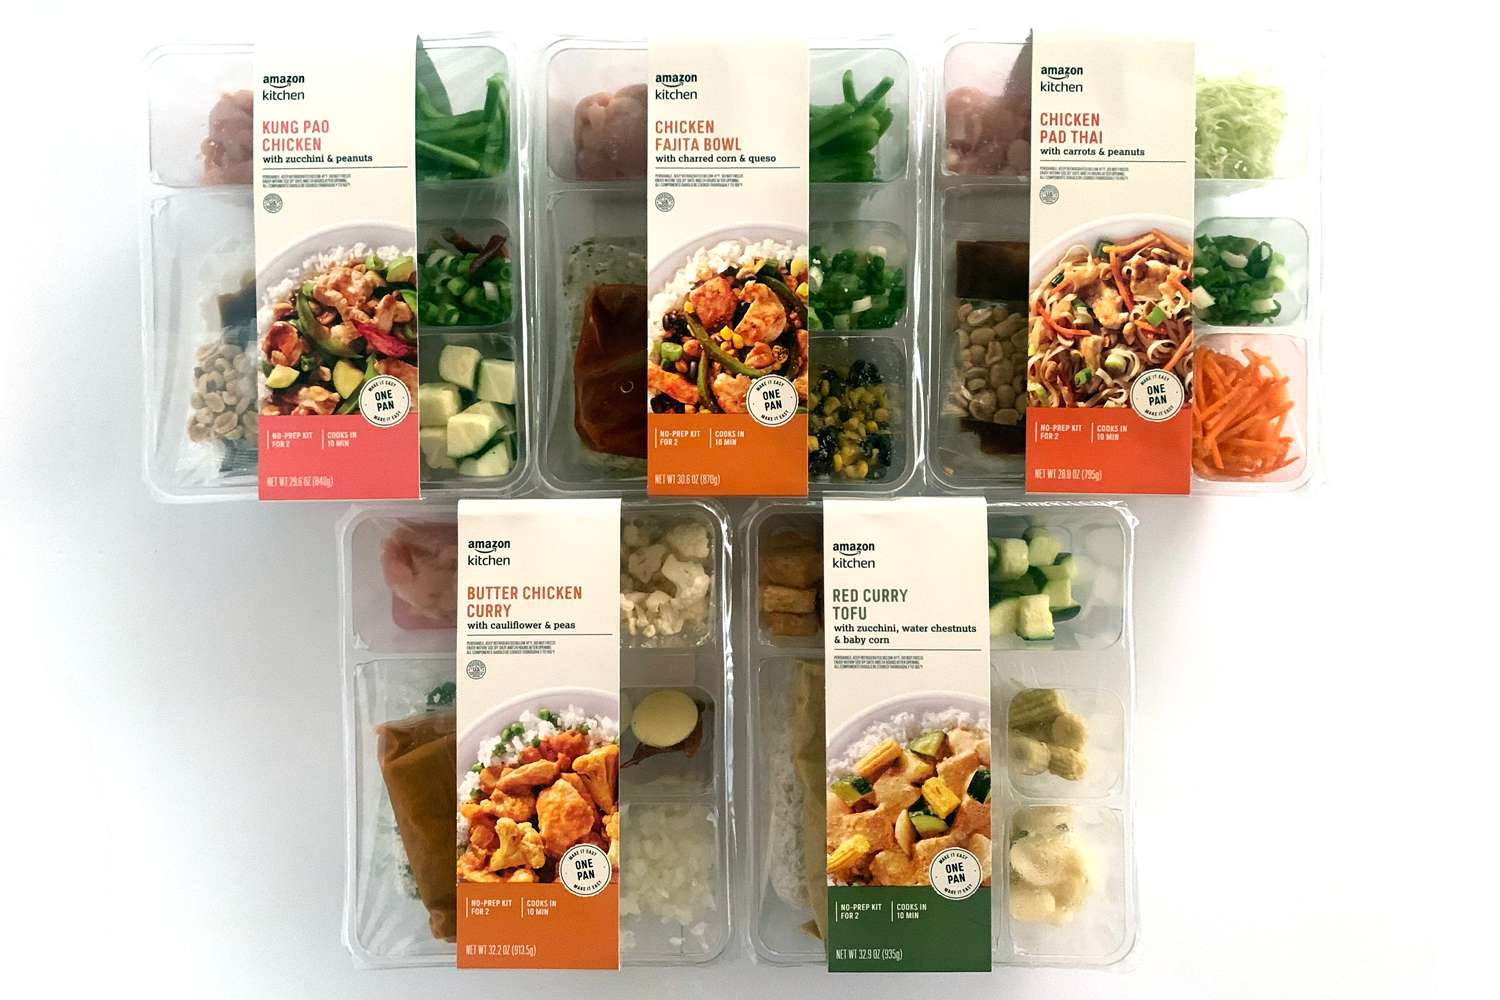 Amazon Meal Kit meals in package